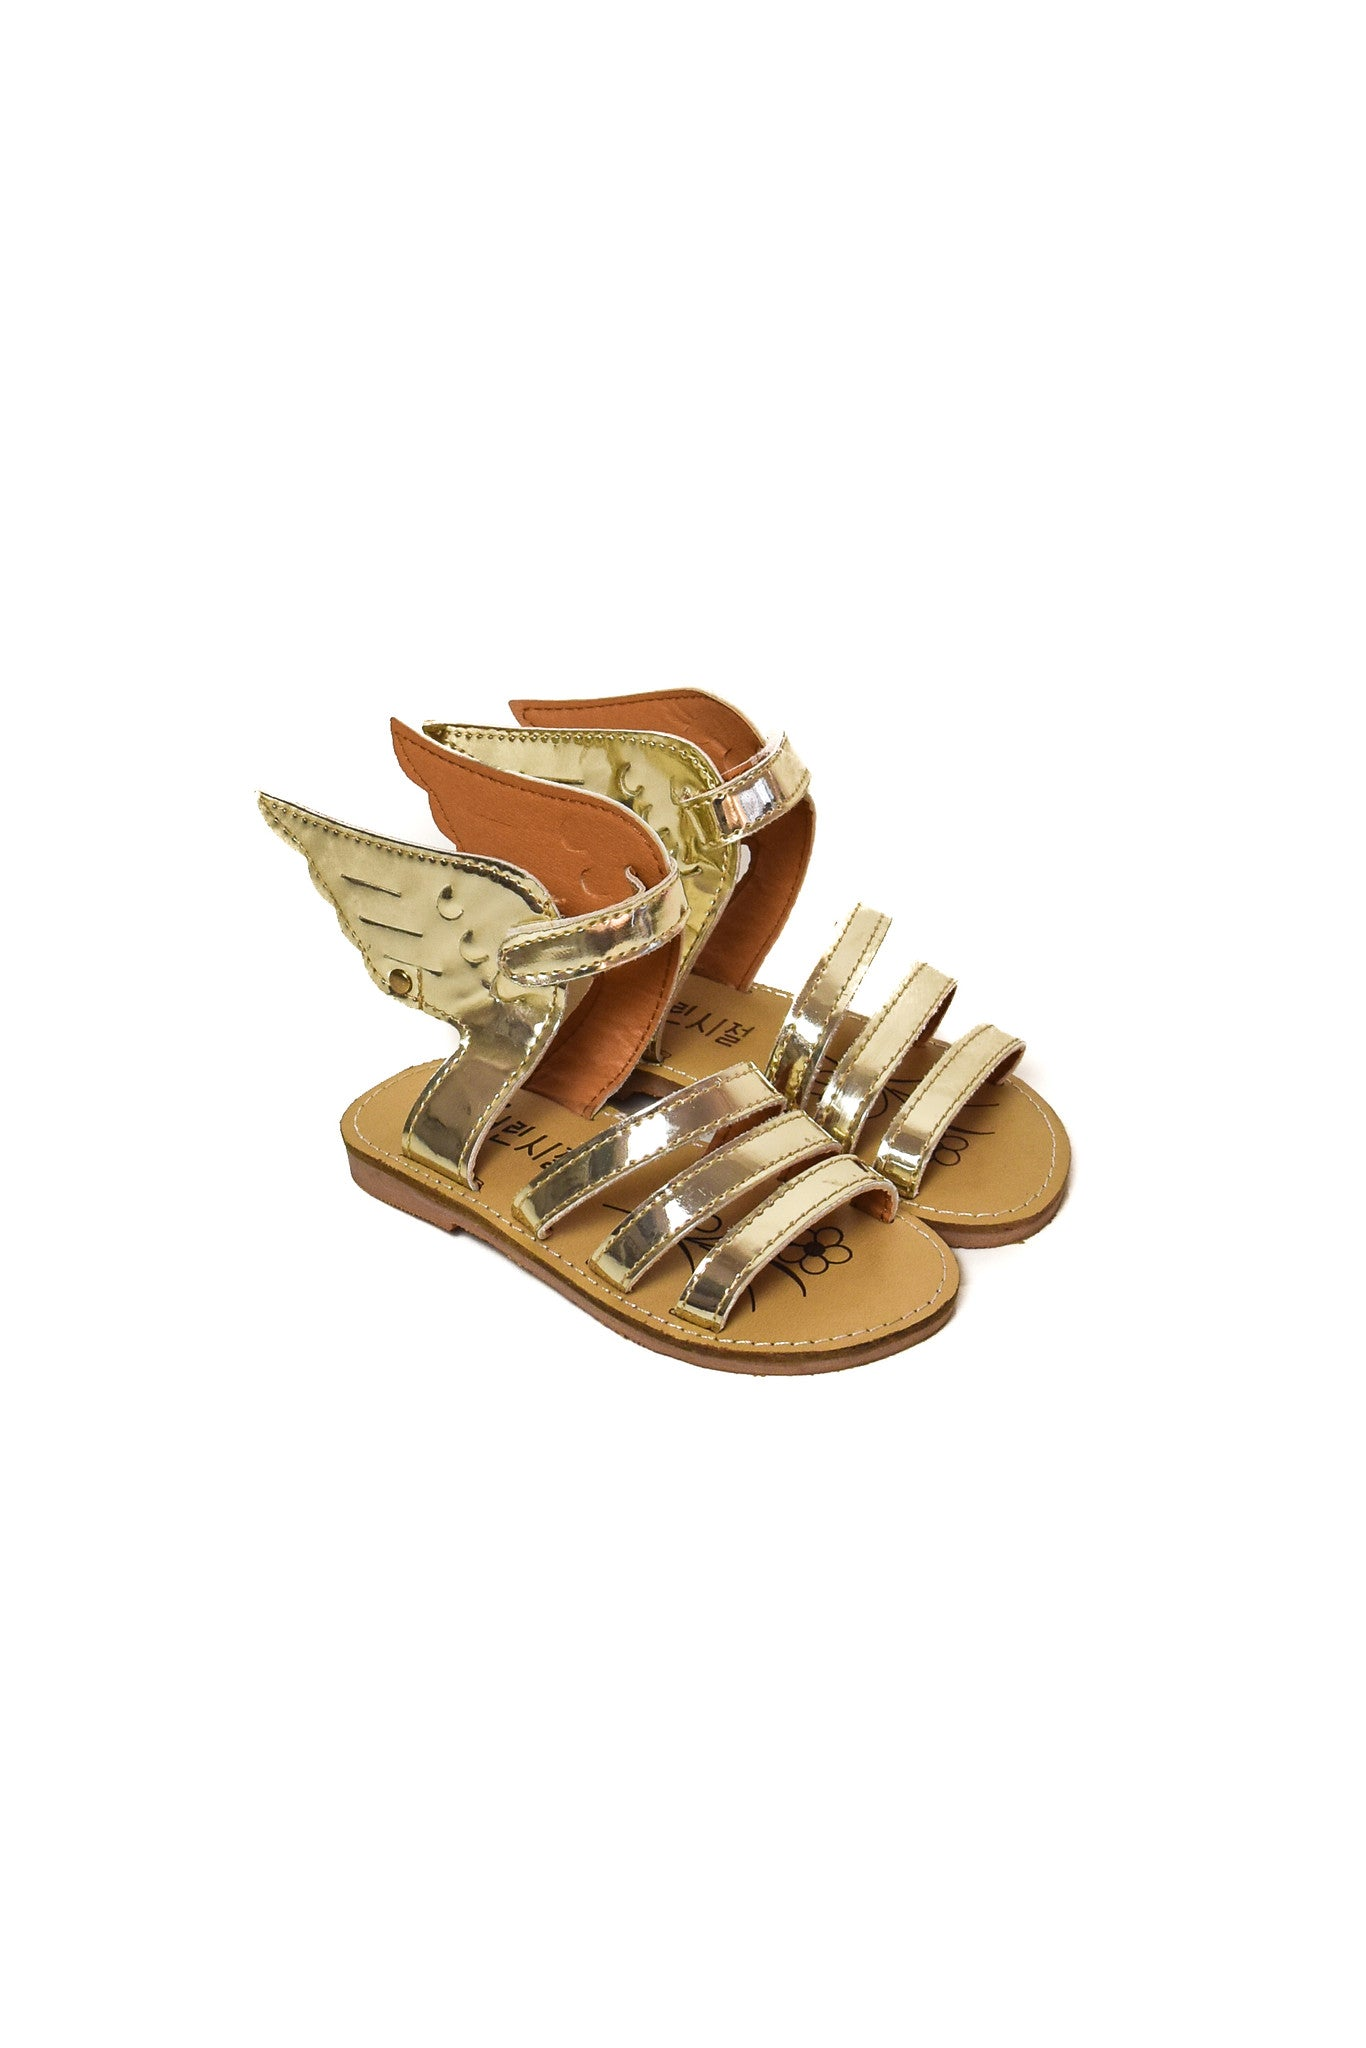 10003485 No Brand Kids~Sandals 3T (EU 24) at Retykle